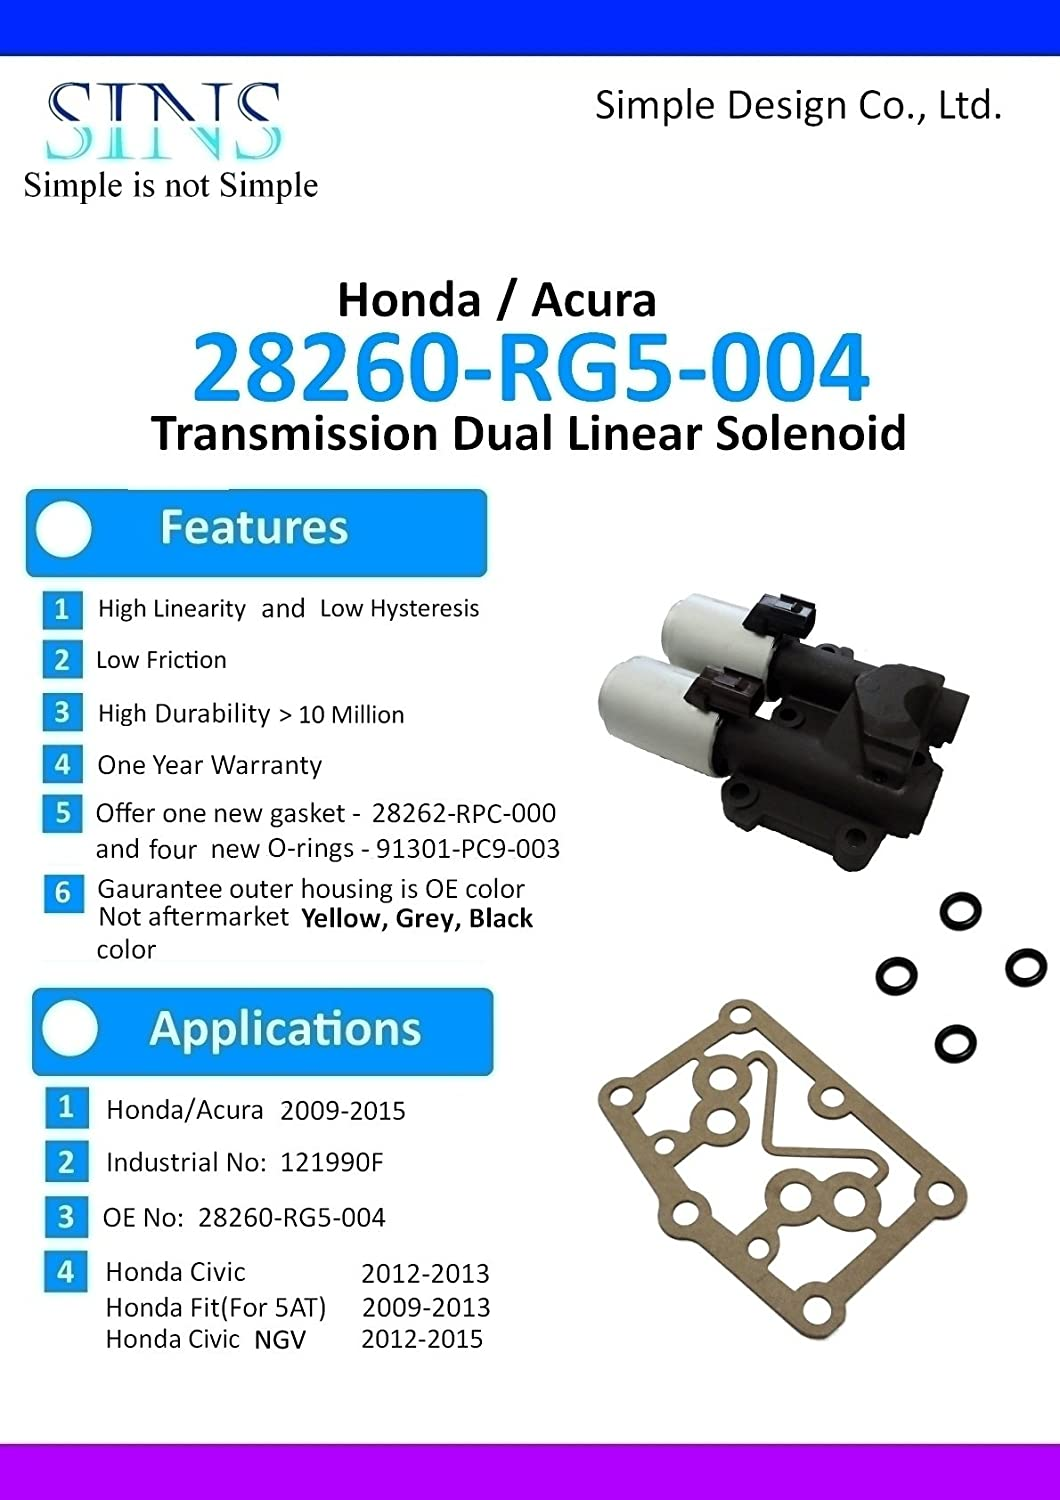 SINS Civic Fit Jazz Transmission AT Clutch Pressure Control Solenoid Valve B and C 28260-RG5-004-Casting